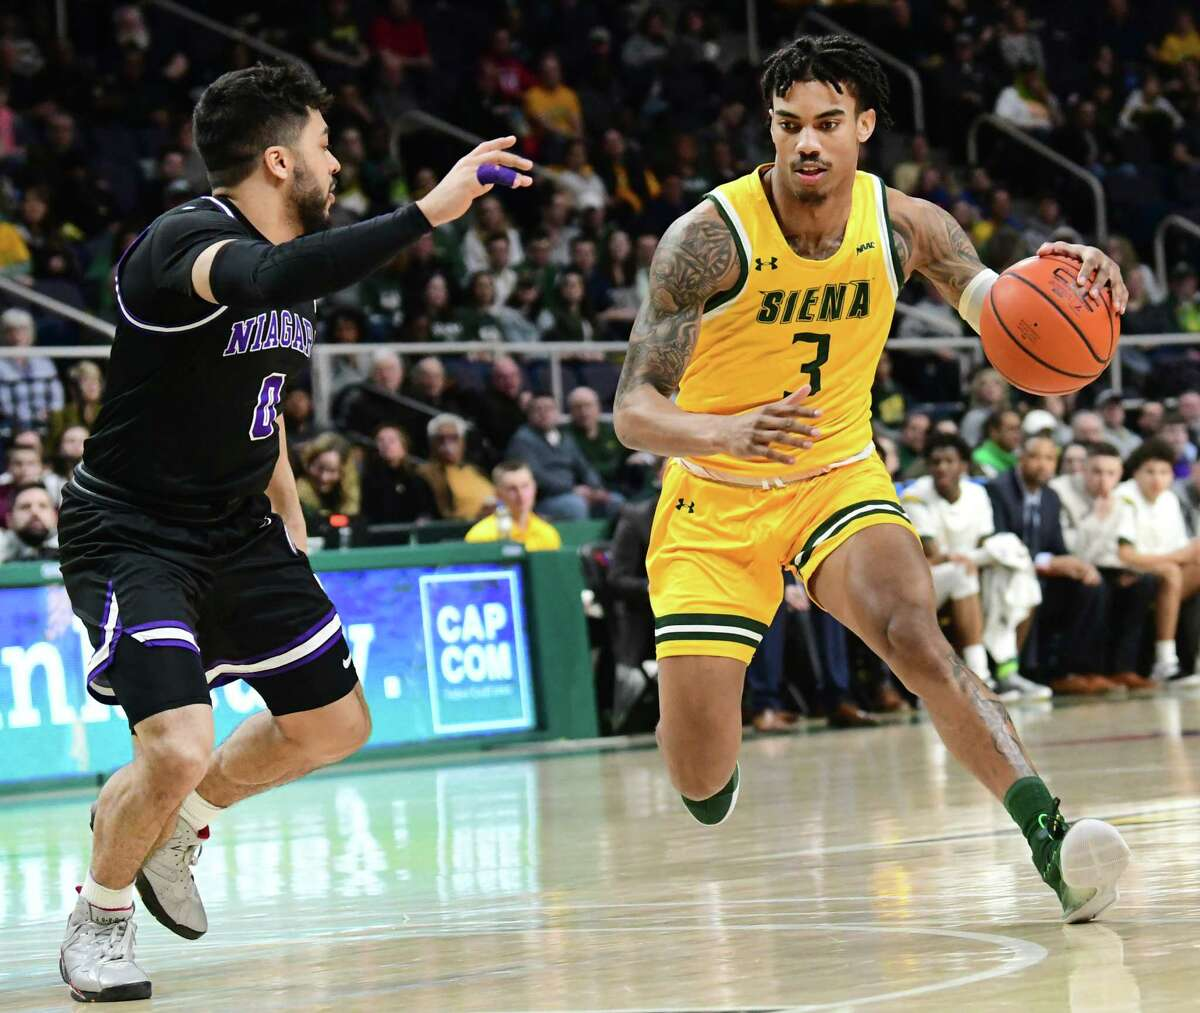 Siena's Manny Camper drives to the basket during a game at Times Union Center last season. He announced on Wednesday that he has withdrawn from the NBA draft and will return to the Saints for his senior season. (Lori Van Buren/Times Union)